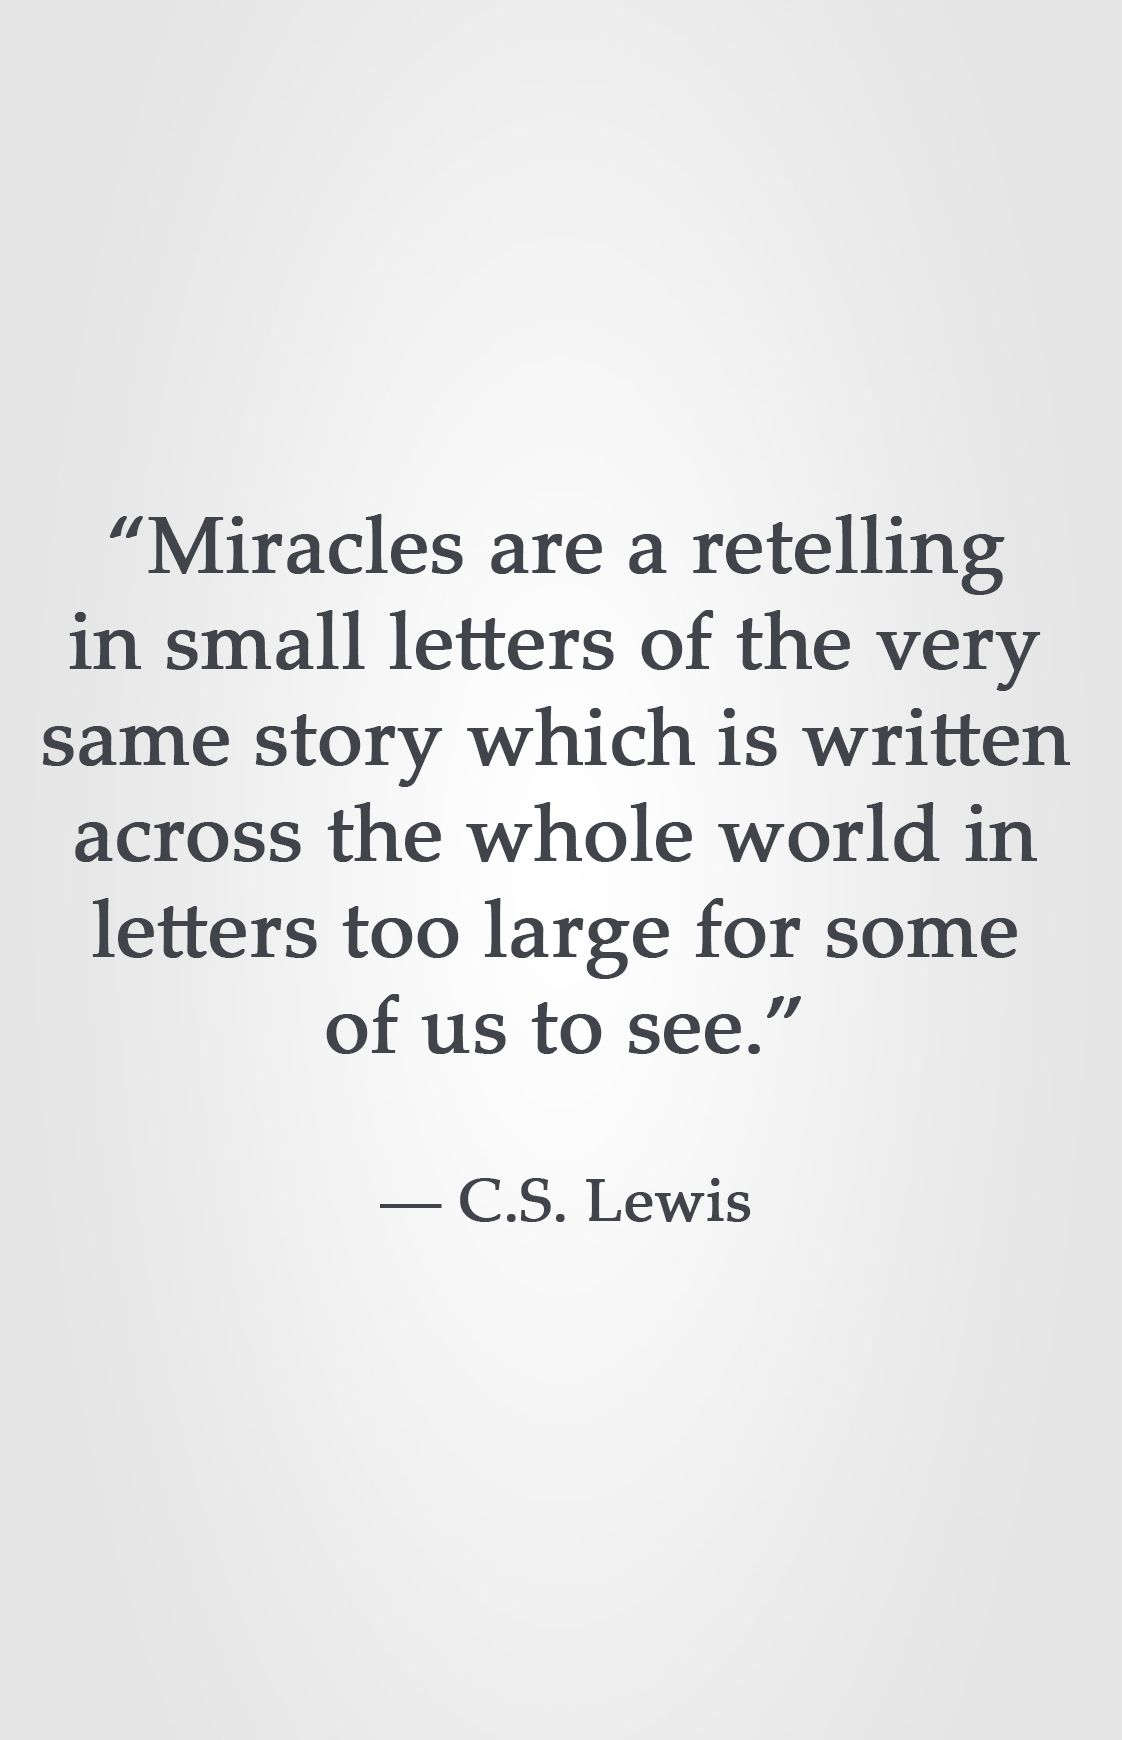 Miracles Are A Retelling In Small Letters Of The Very Same Story Which Is Written Across The Whole World In Let Cs Lewis Quotes Quotable Quotes Miracle Quotes